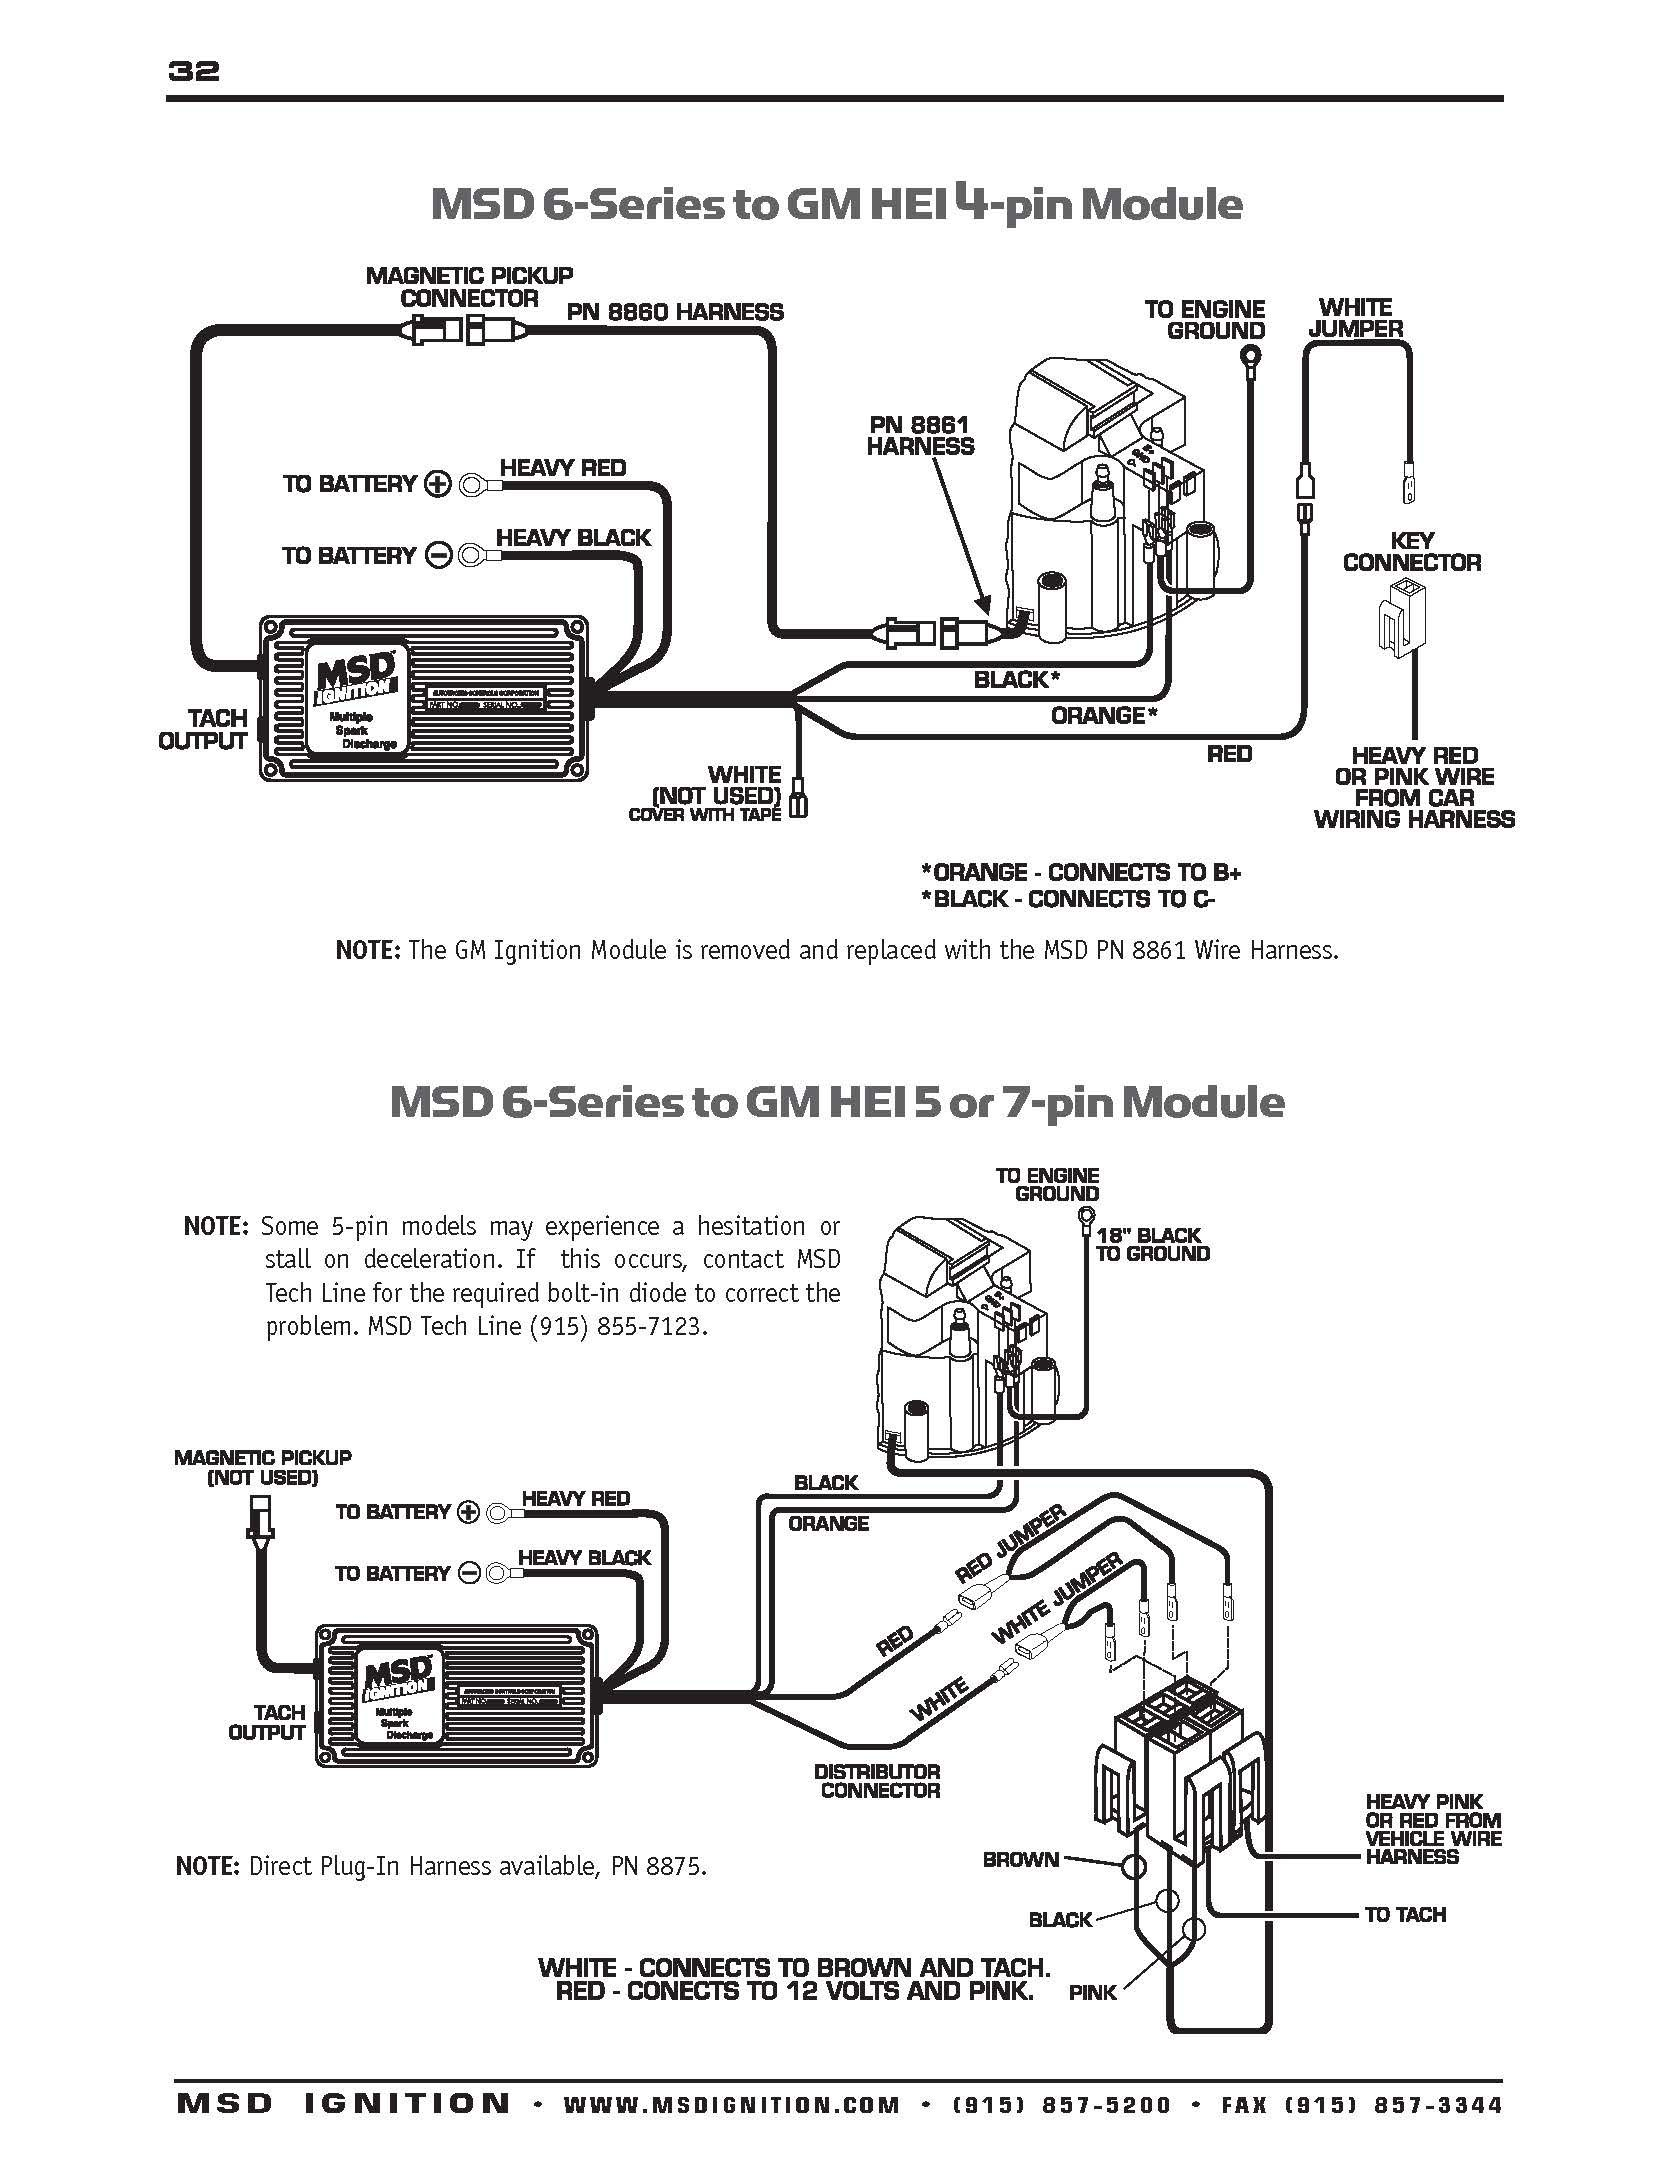 Chevelle Coil Wiring Diagram - Simple Wiring Diagram on 1968 camaro ignition wiring, 1967 mustang ignition wiring, 1968 mustang ignition wiring, 1965 mustang ignition wiring, 1957 chevy ignition wiring,